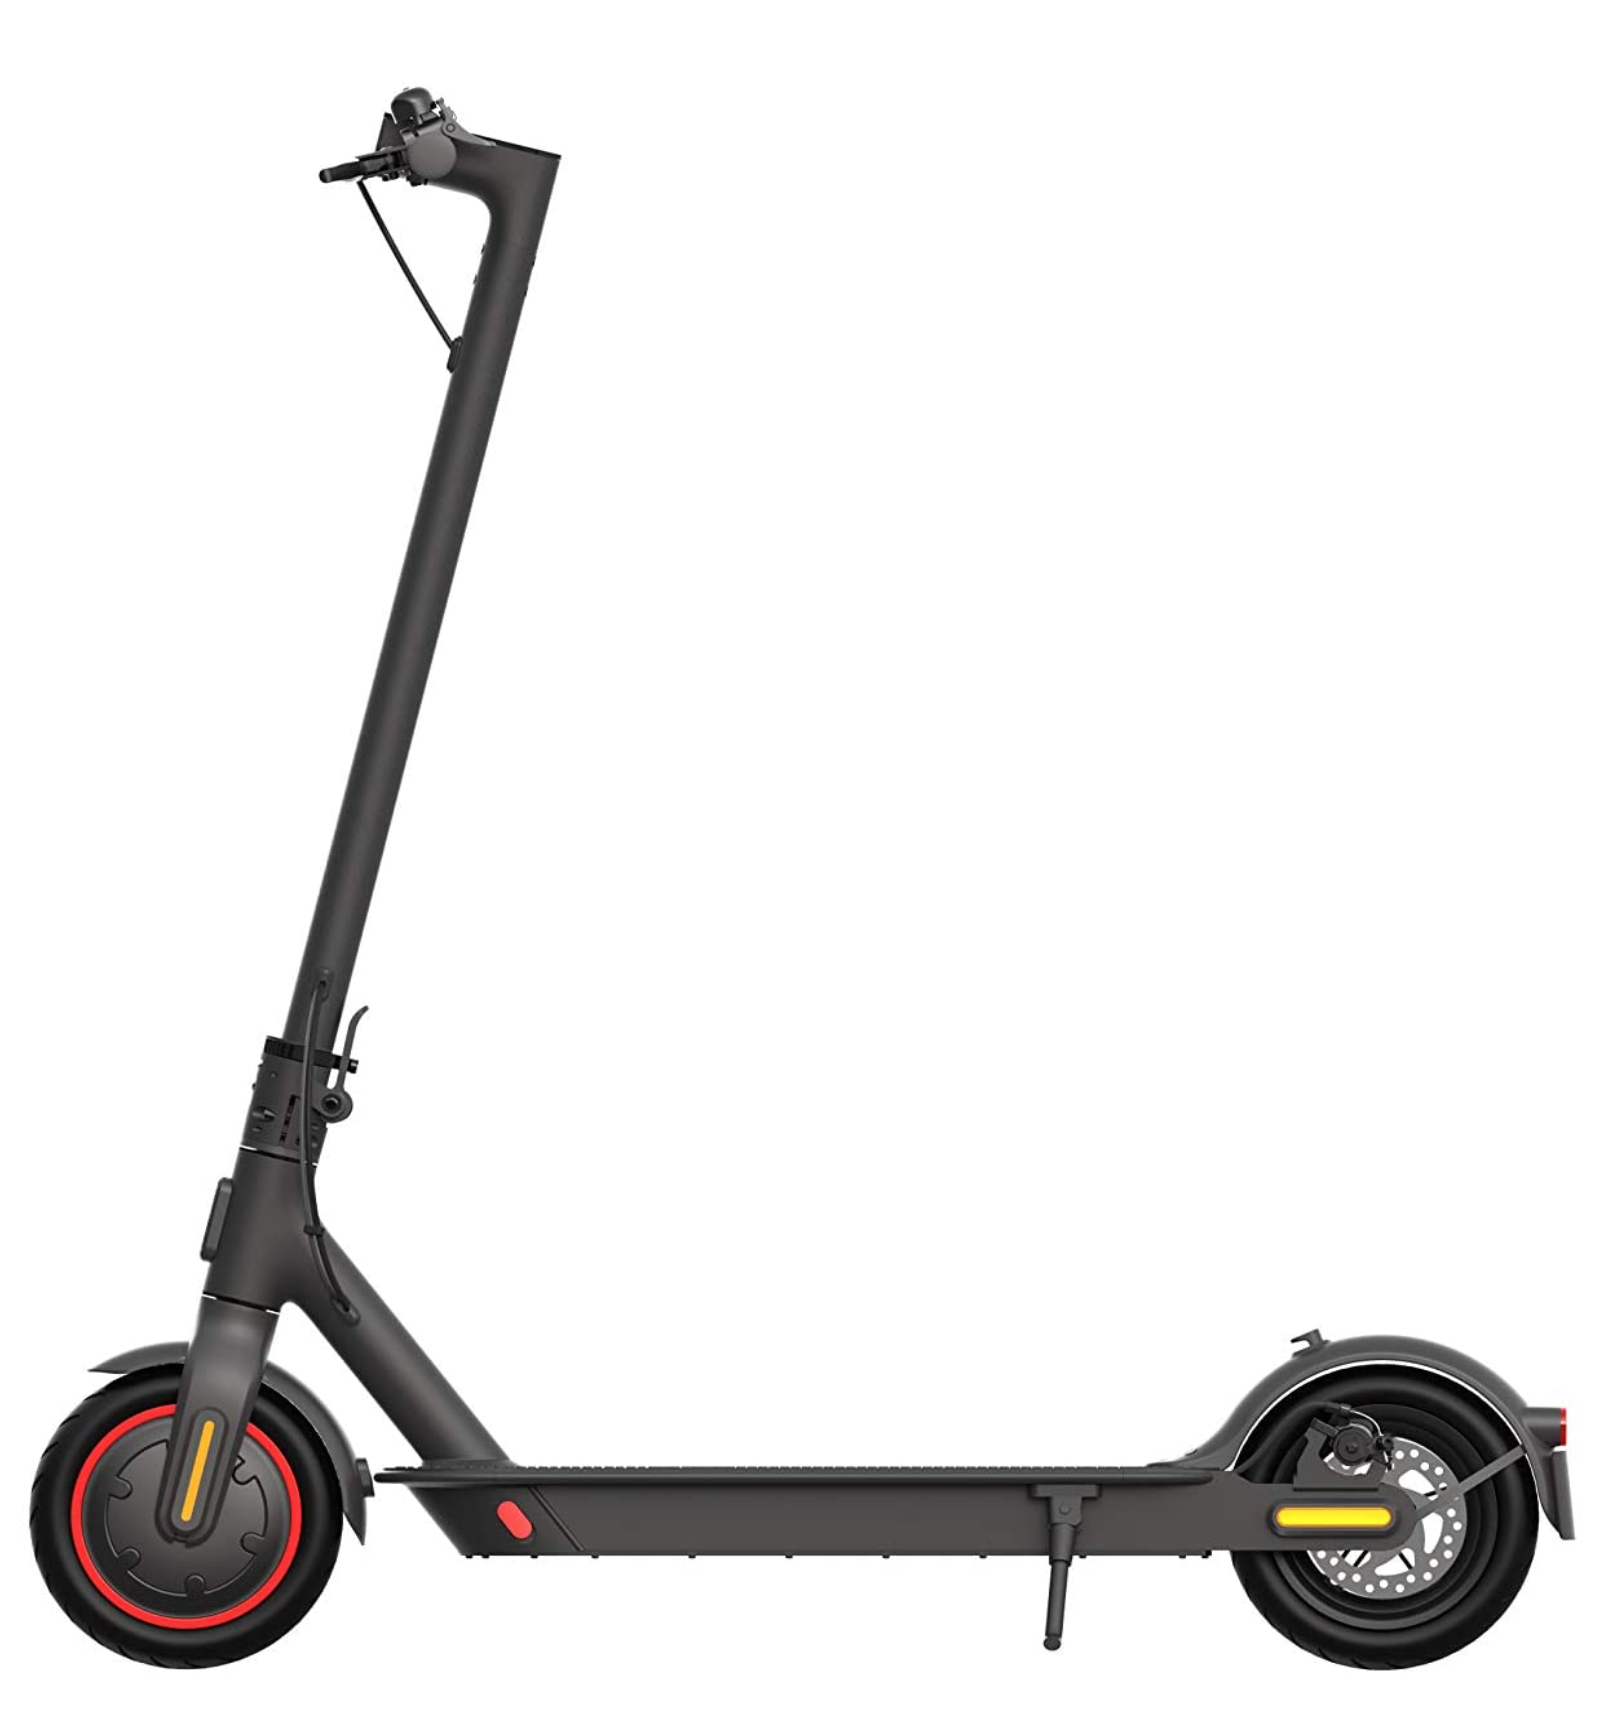 Xiaomi M365 Pro 2 Electric Scooter Profile Image